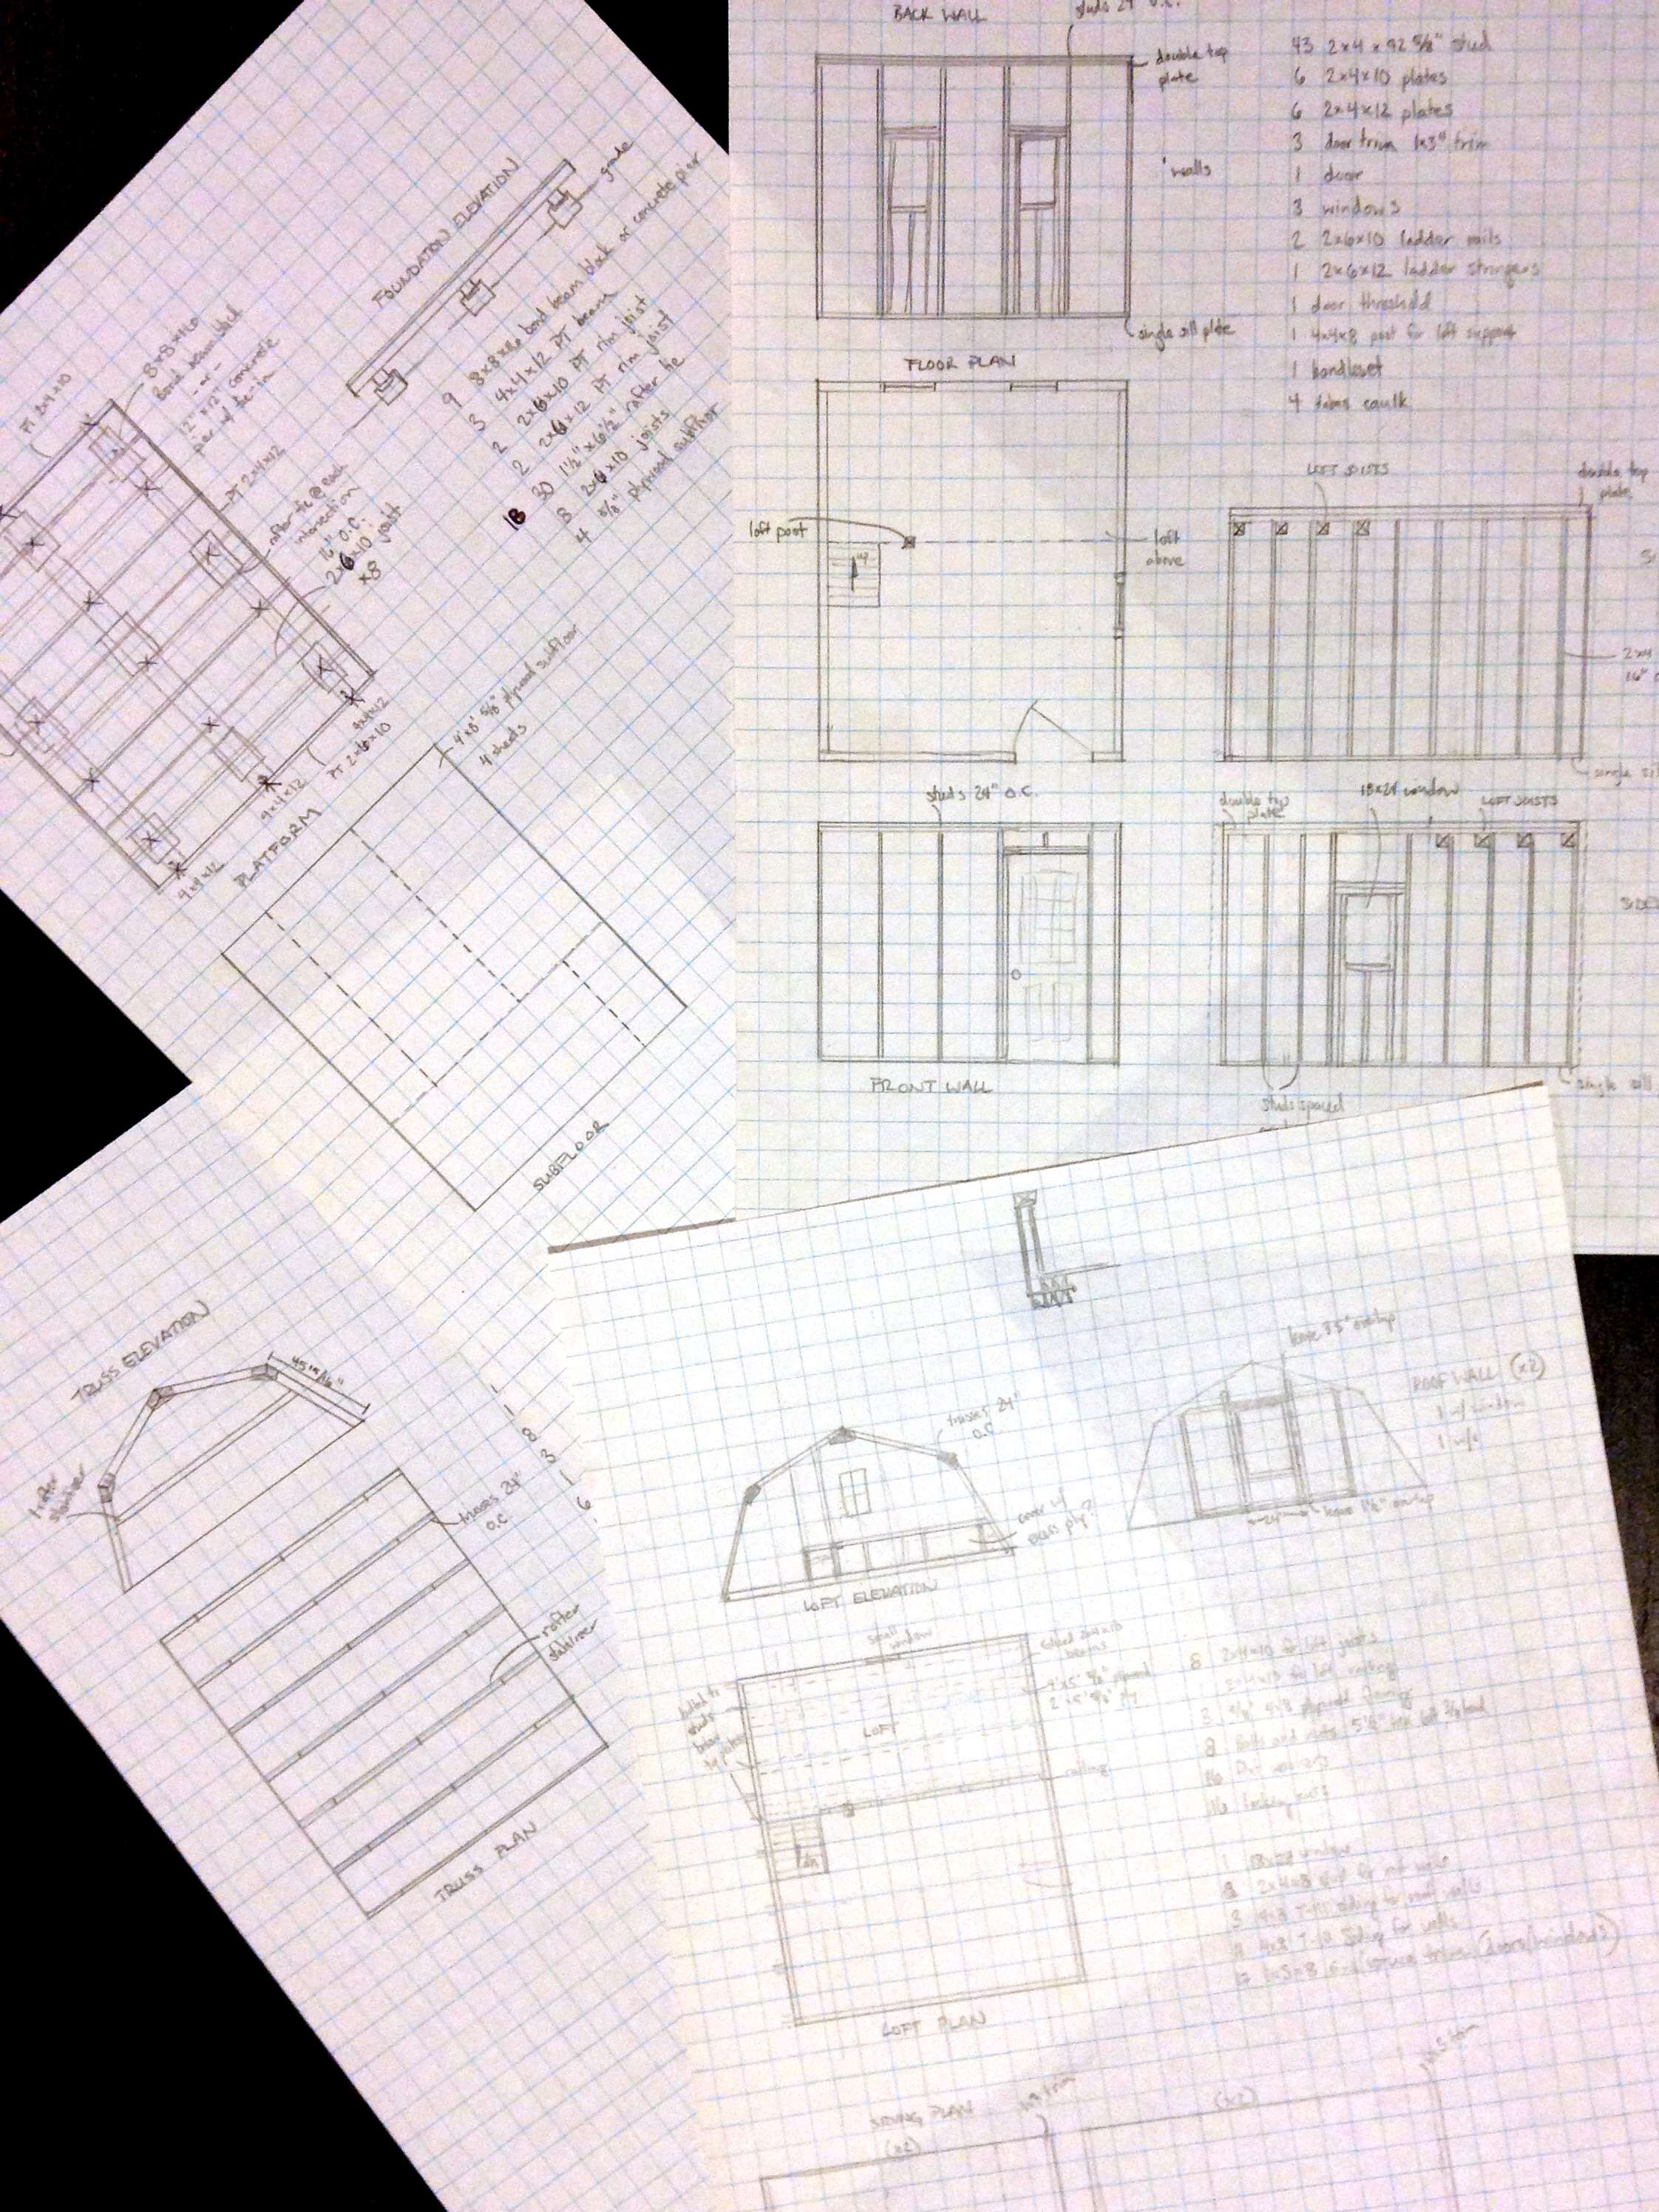 Four sheets of sketched plans for our build-from-scratch design. Mr. Powell, my high school architecture teacher, would cringe at my sloppy lines and poor lettering.